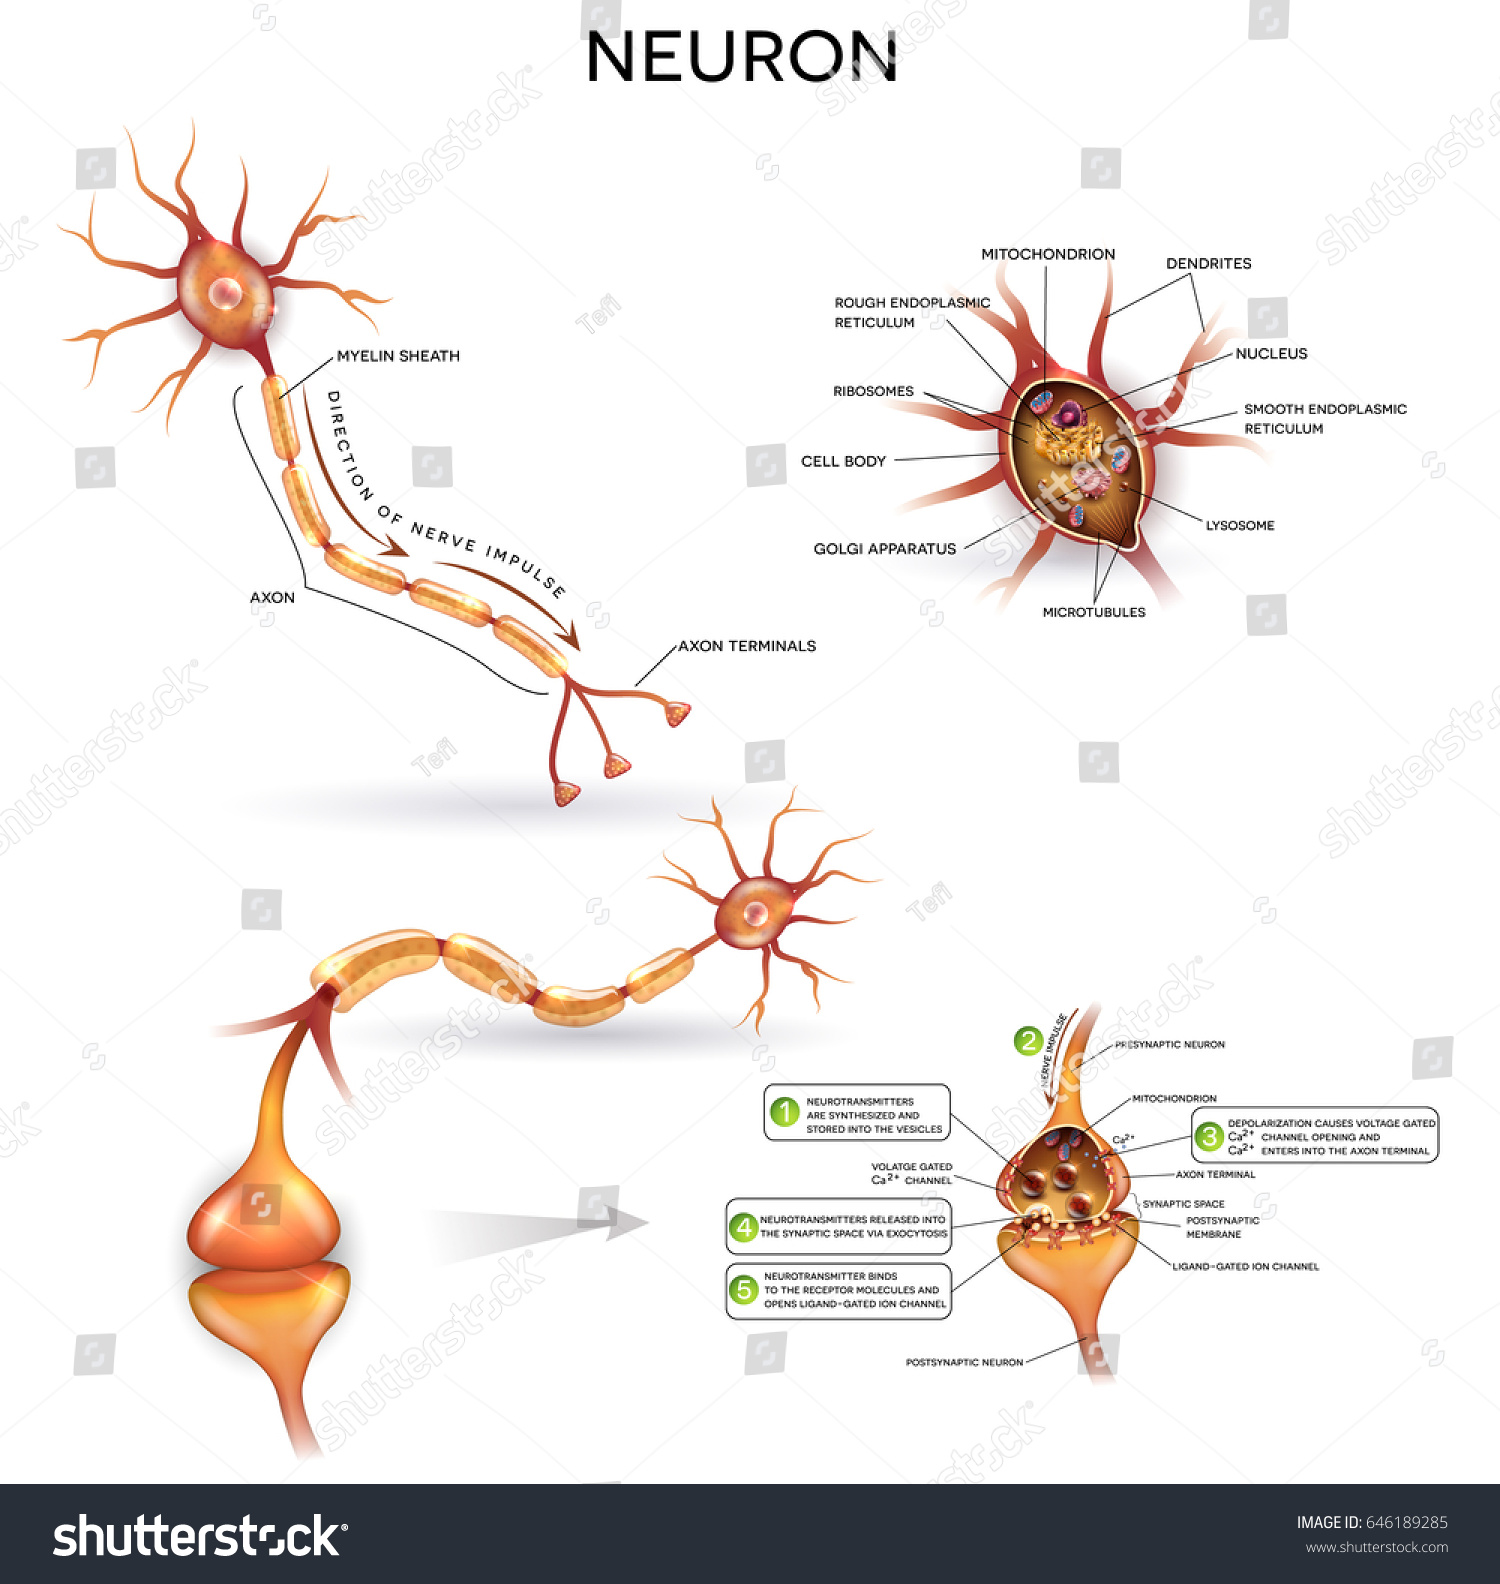 Neuron nerve cell close illustrations set stock illustration neuron nerve cell close up illustrations set synapse detailed anatomy neuron passes ccuart Image collections